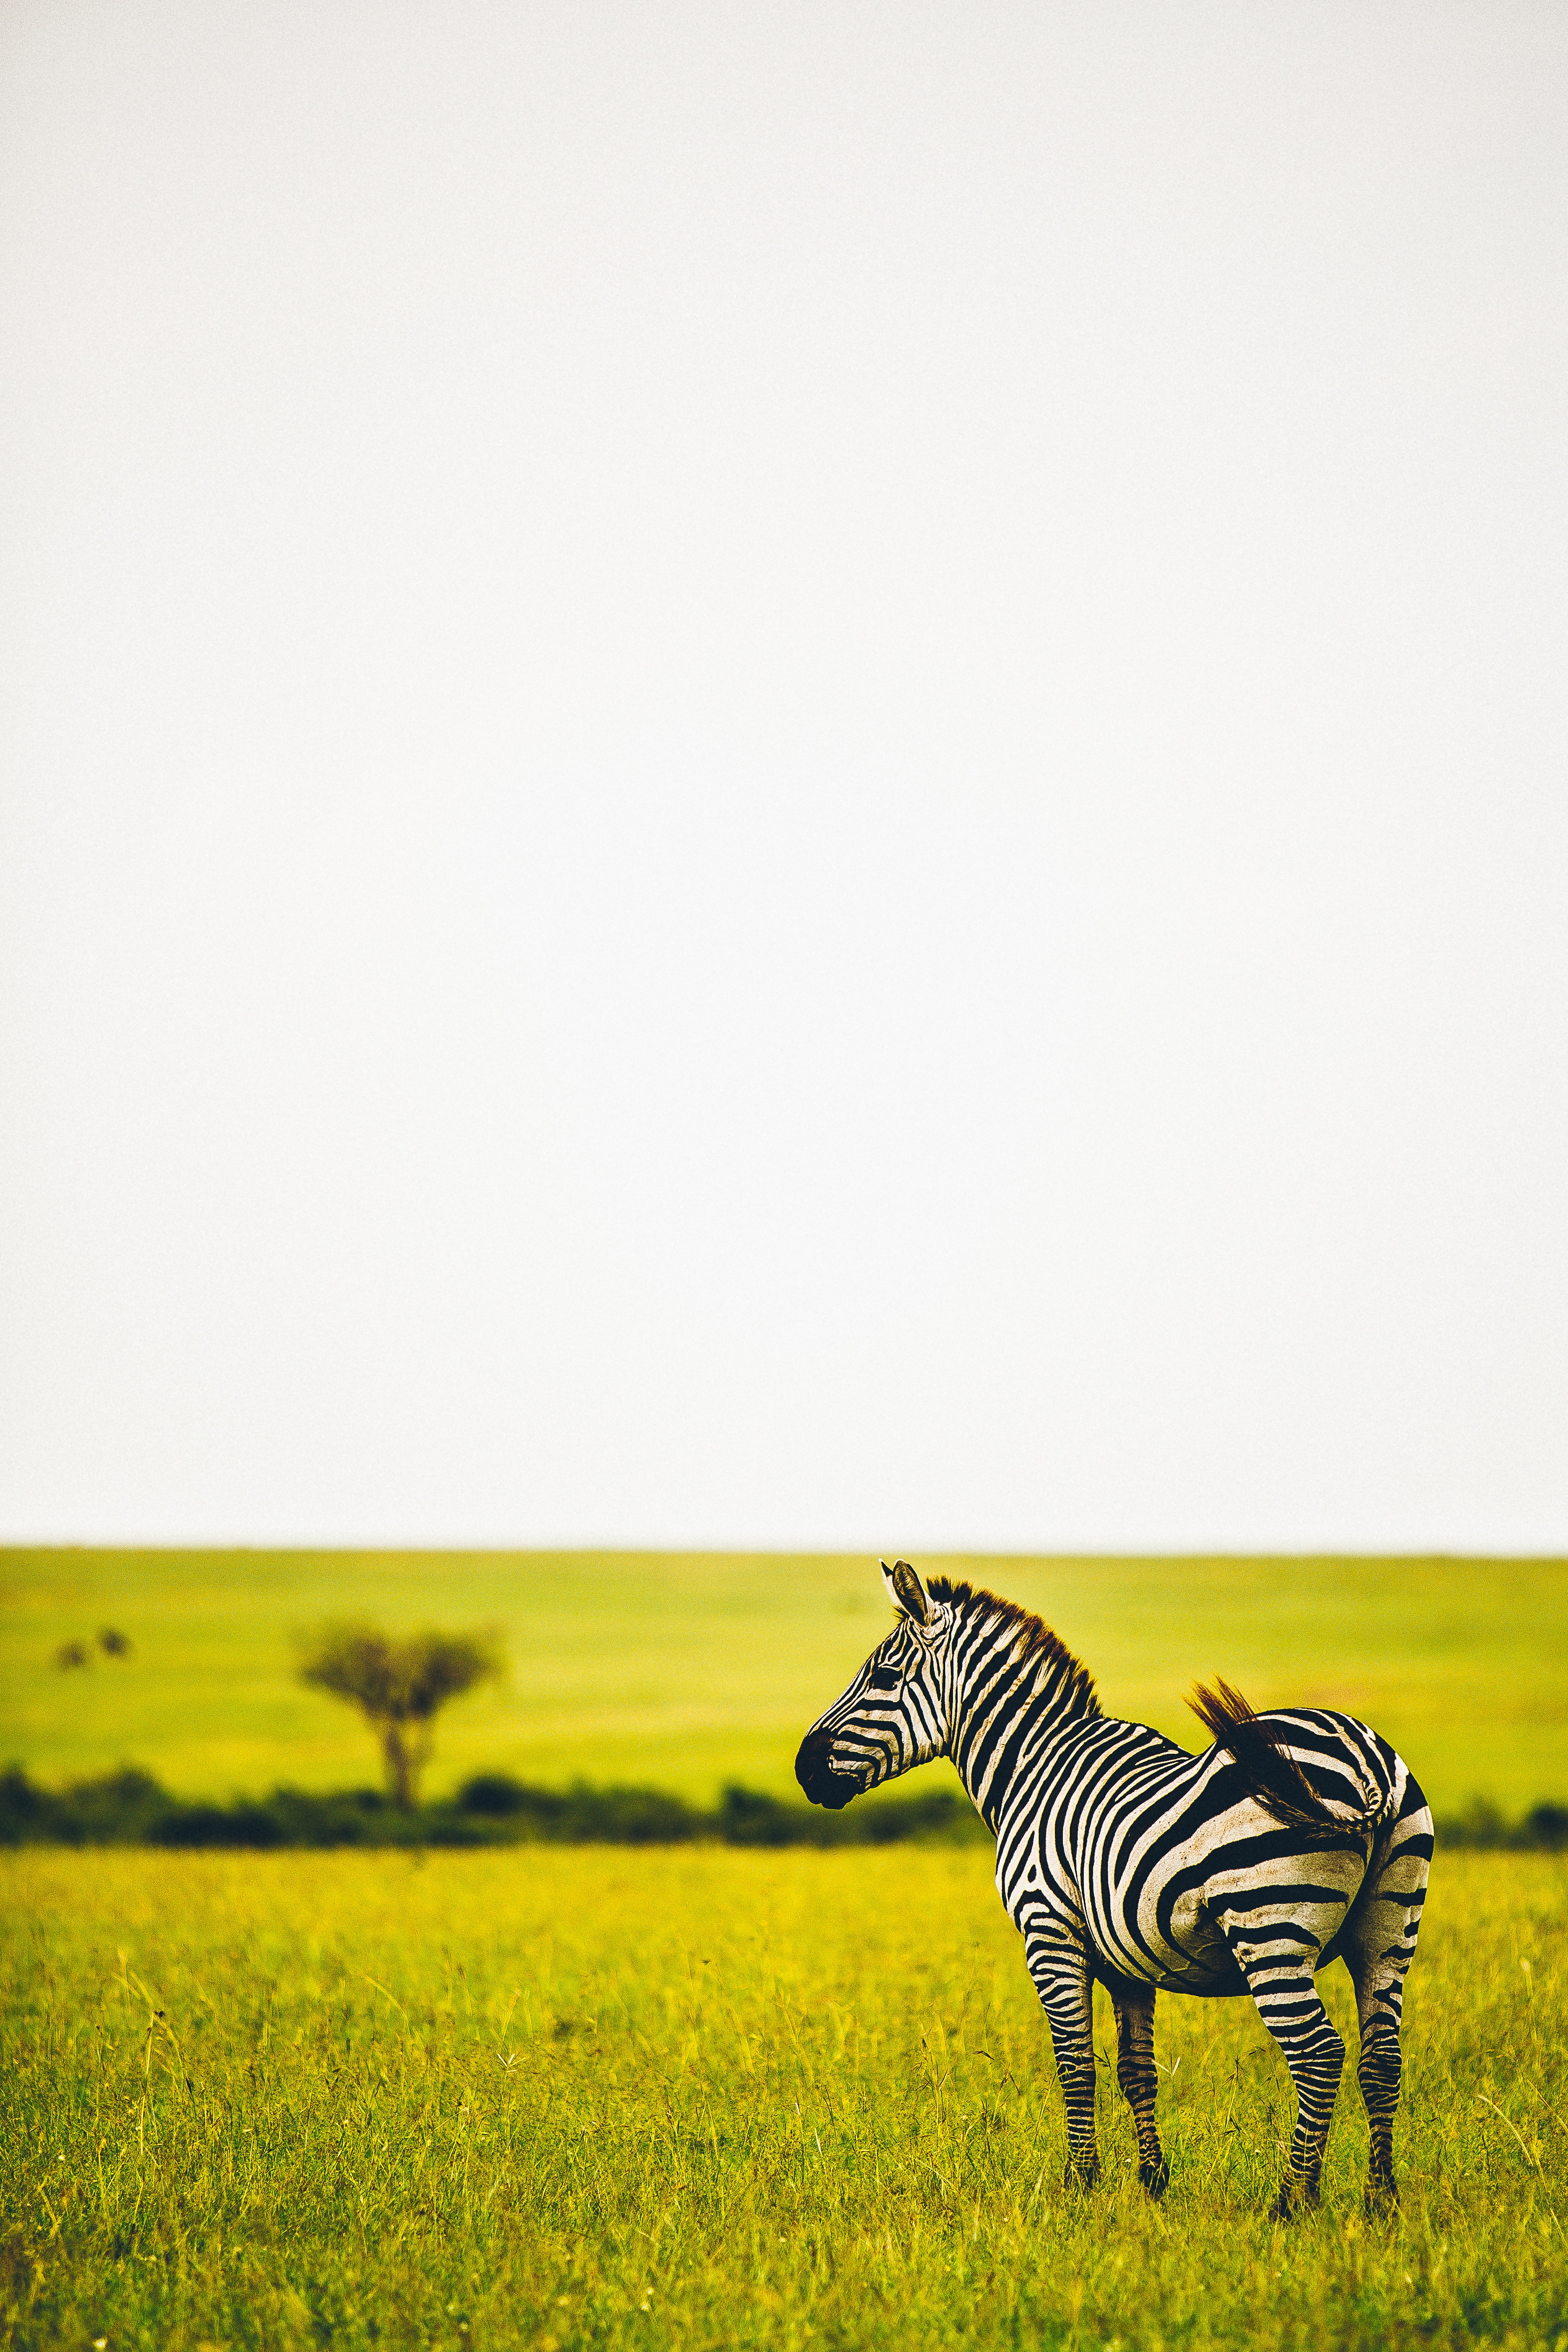 52542 download wallpaper Animals, Zebra, Savanna, Wildlife, Animal, Striped, Greens, Grass screensavers and pictures for free